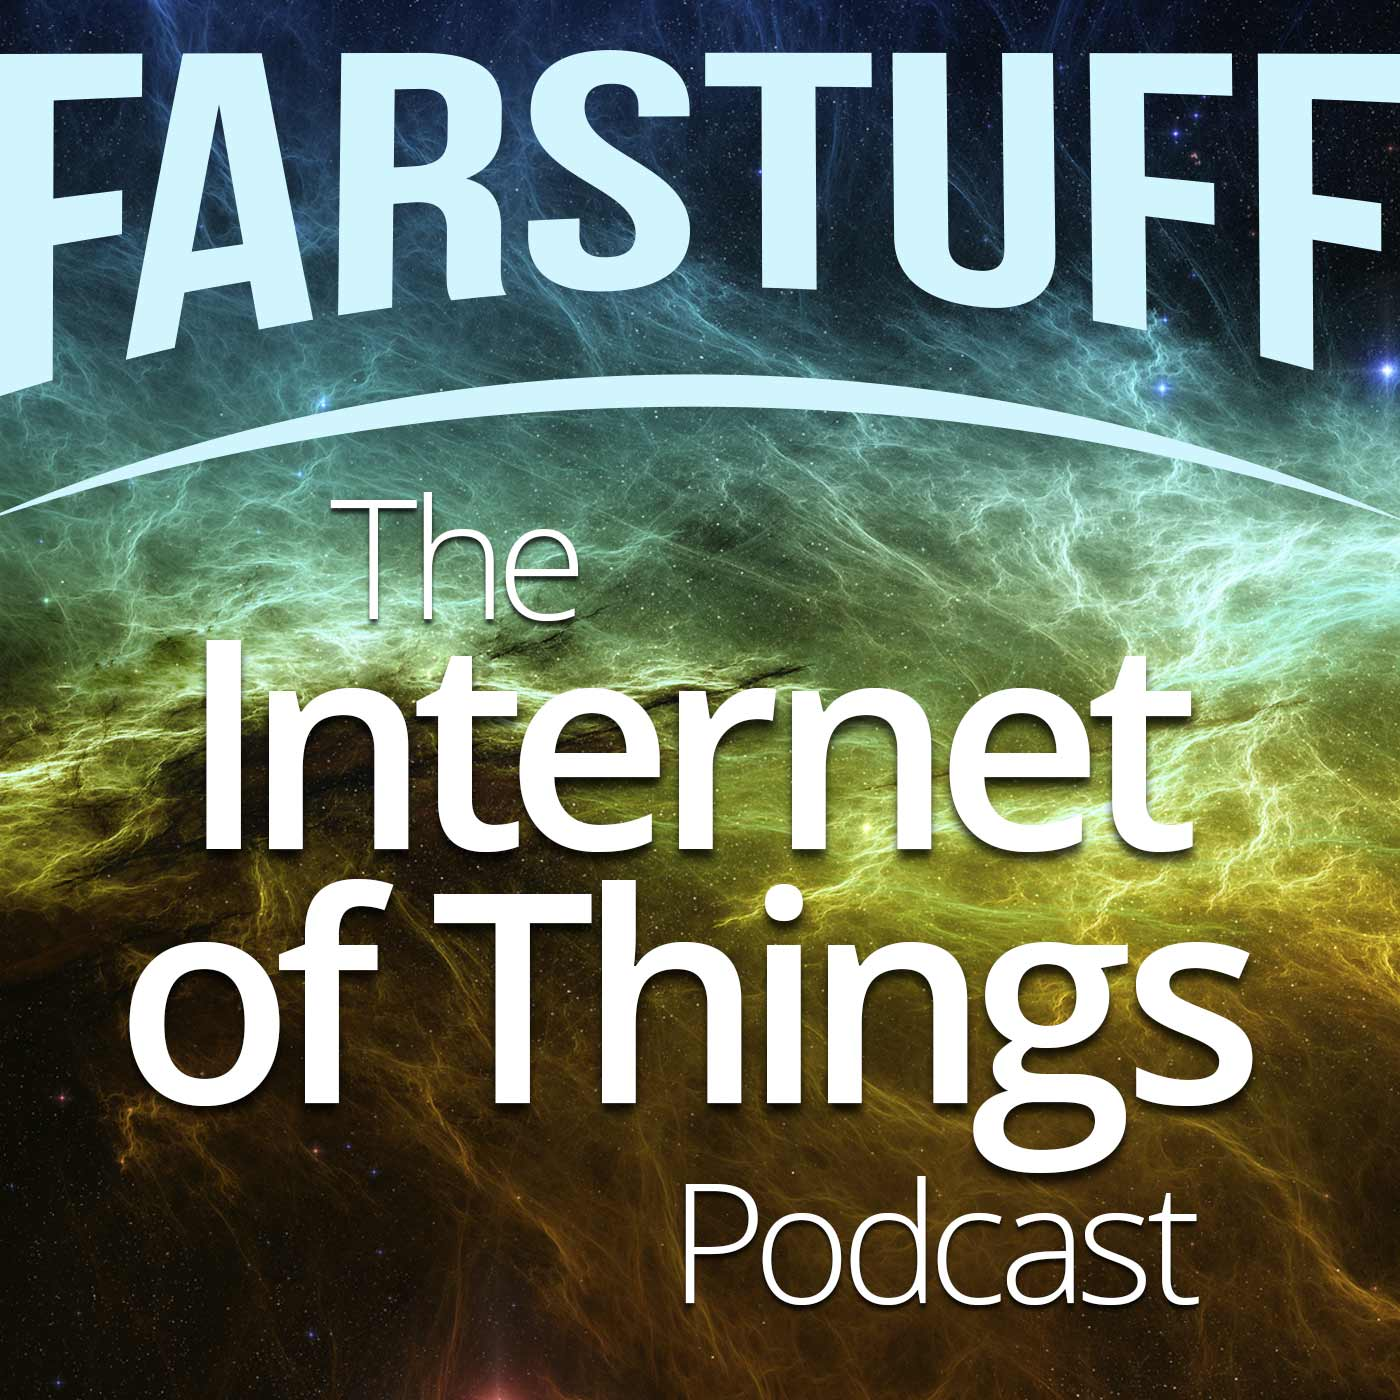 Farstuff - The IoT Podcast